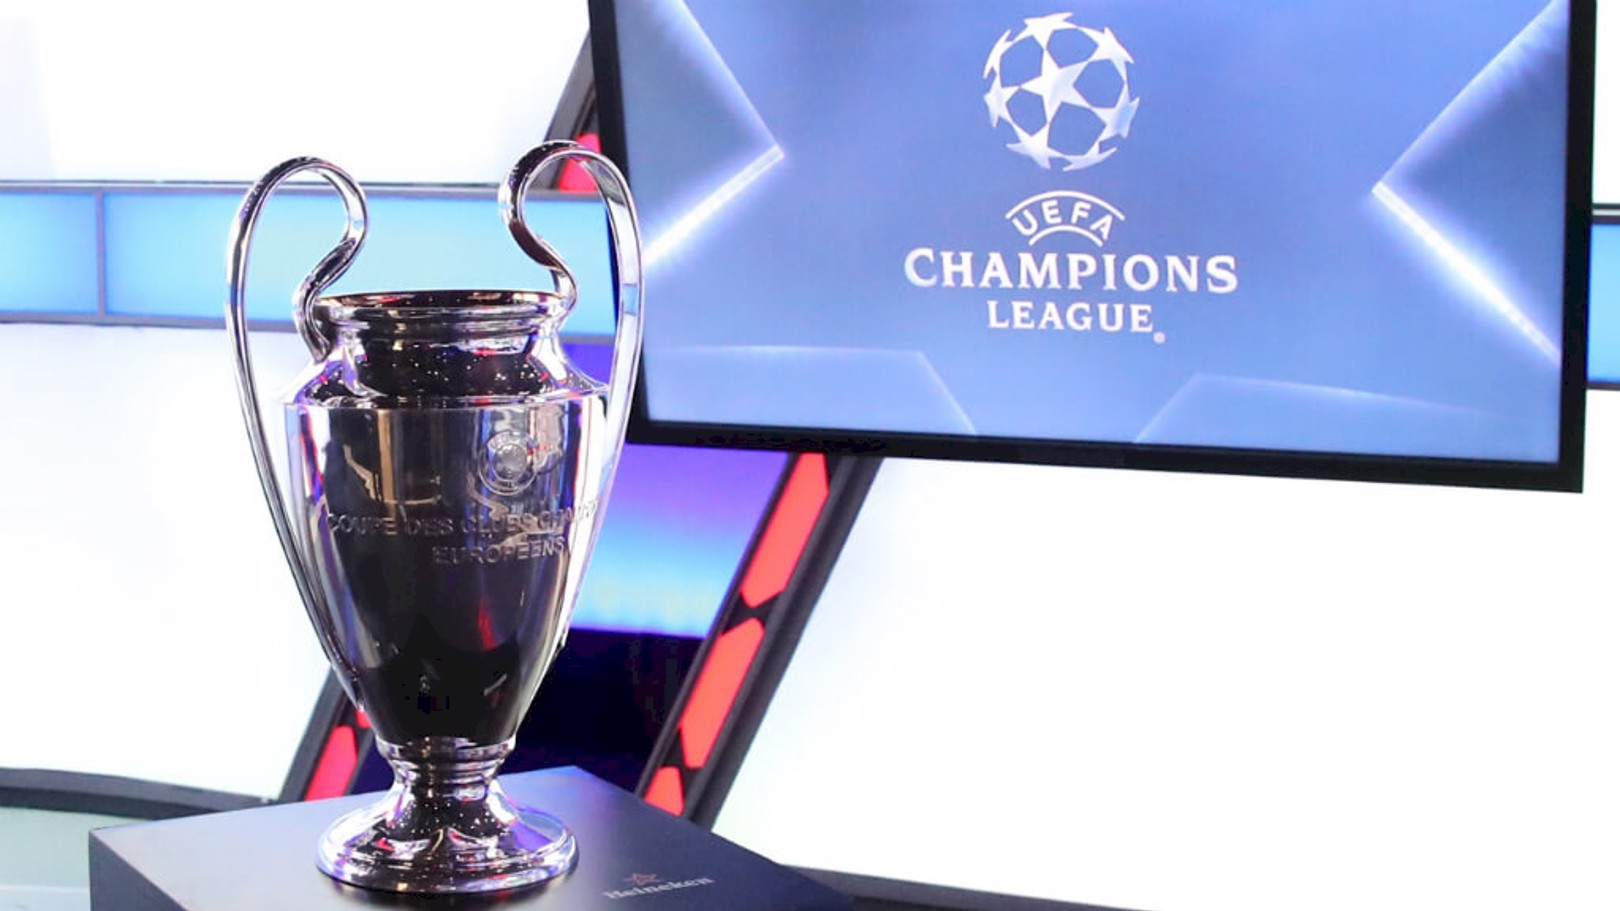 CHAMPIONS LEAGUE DRAW: Who will City face in the 2018/19 group stage?